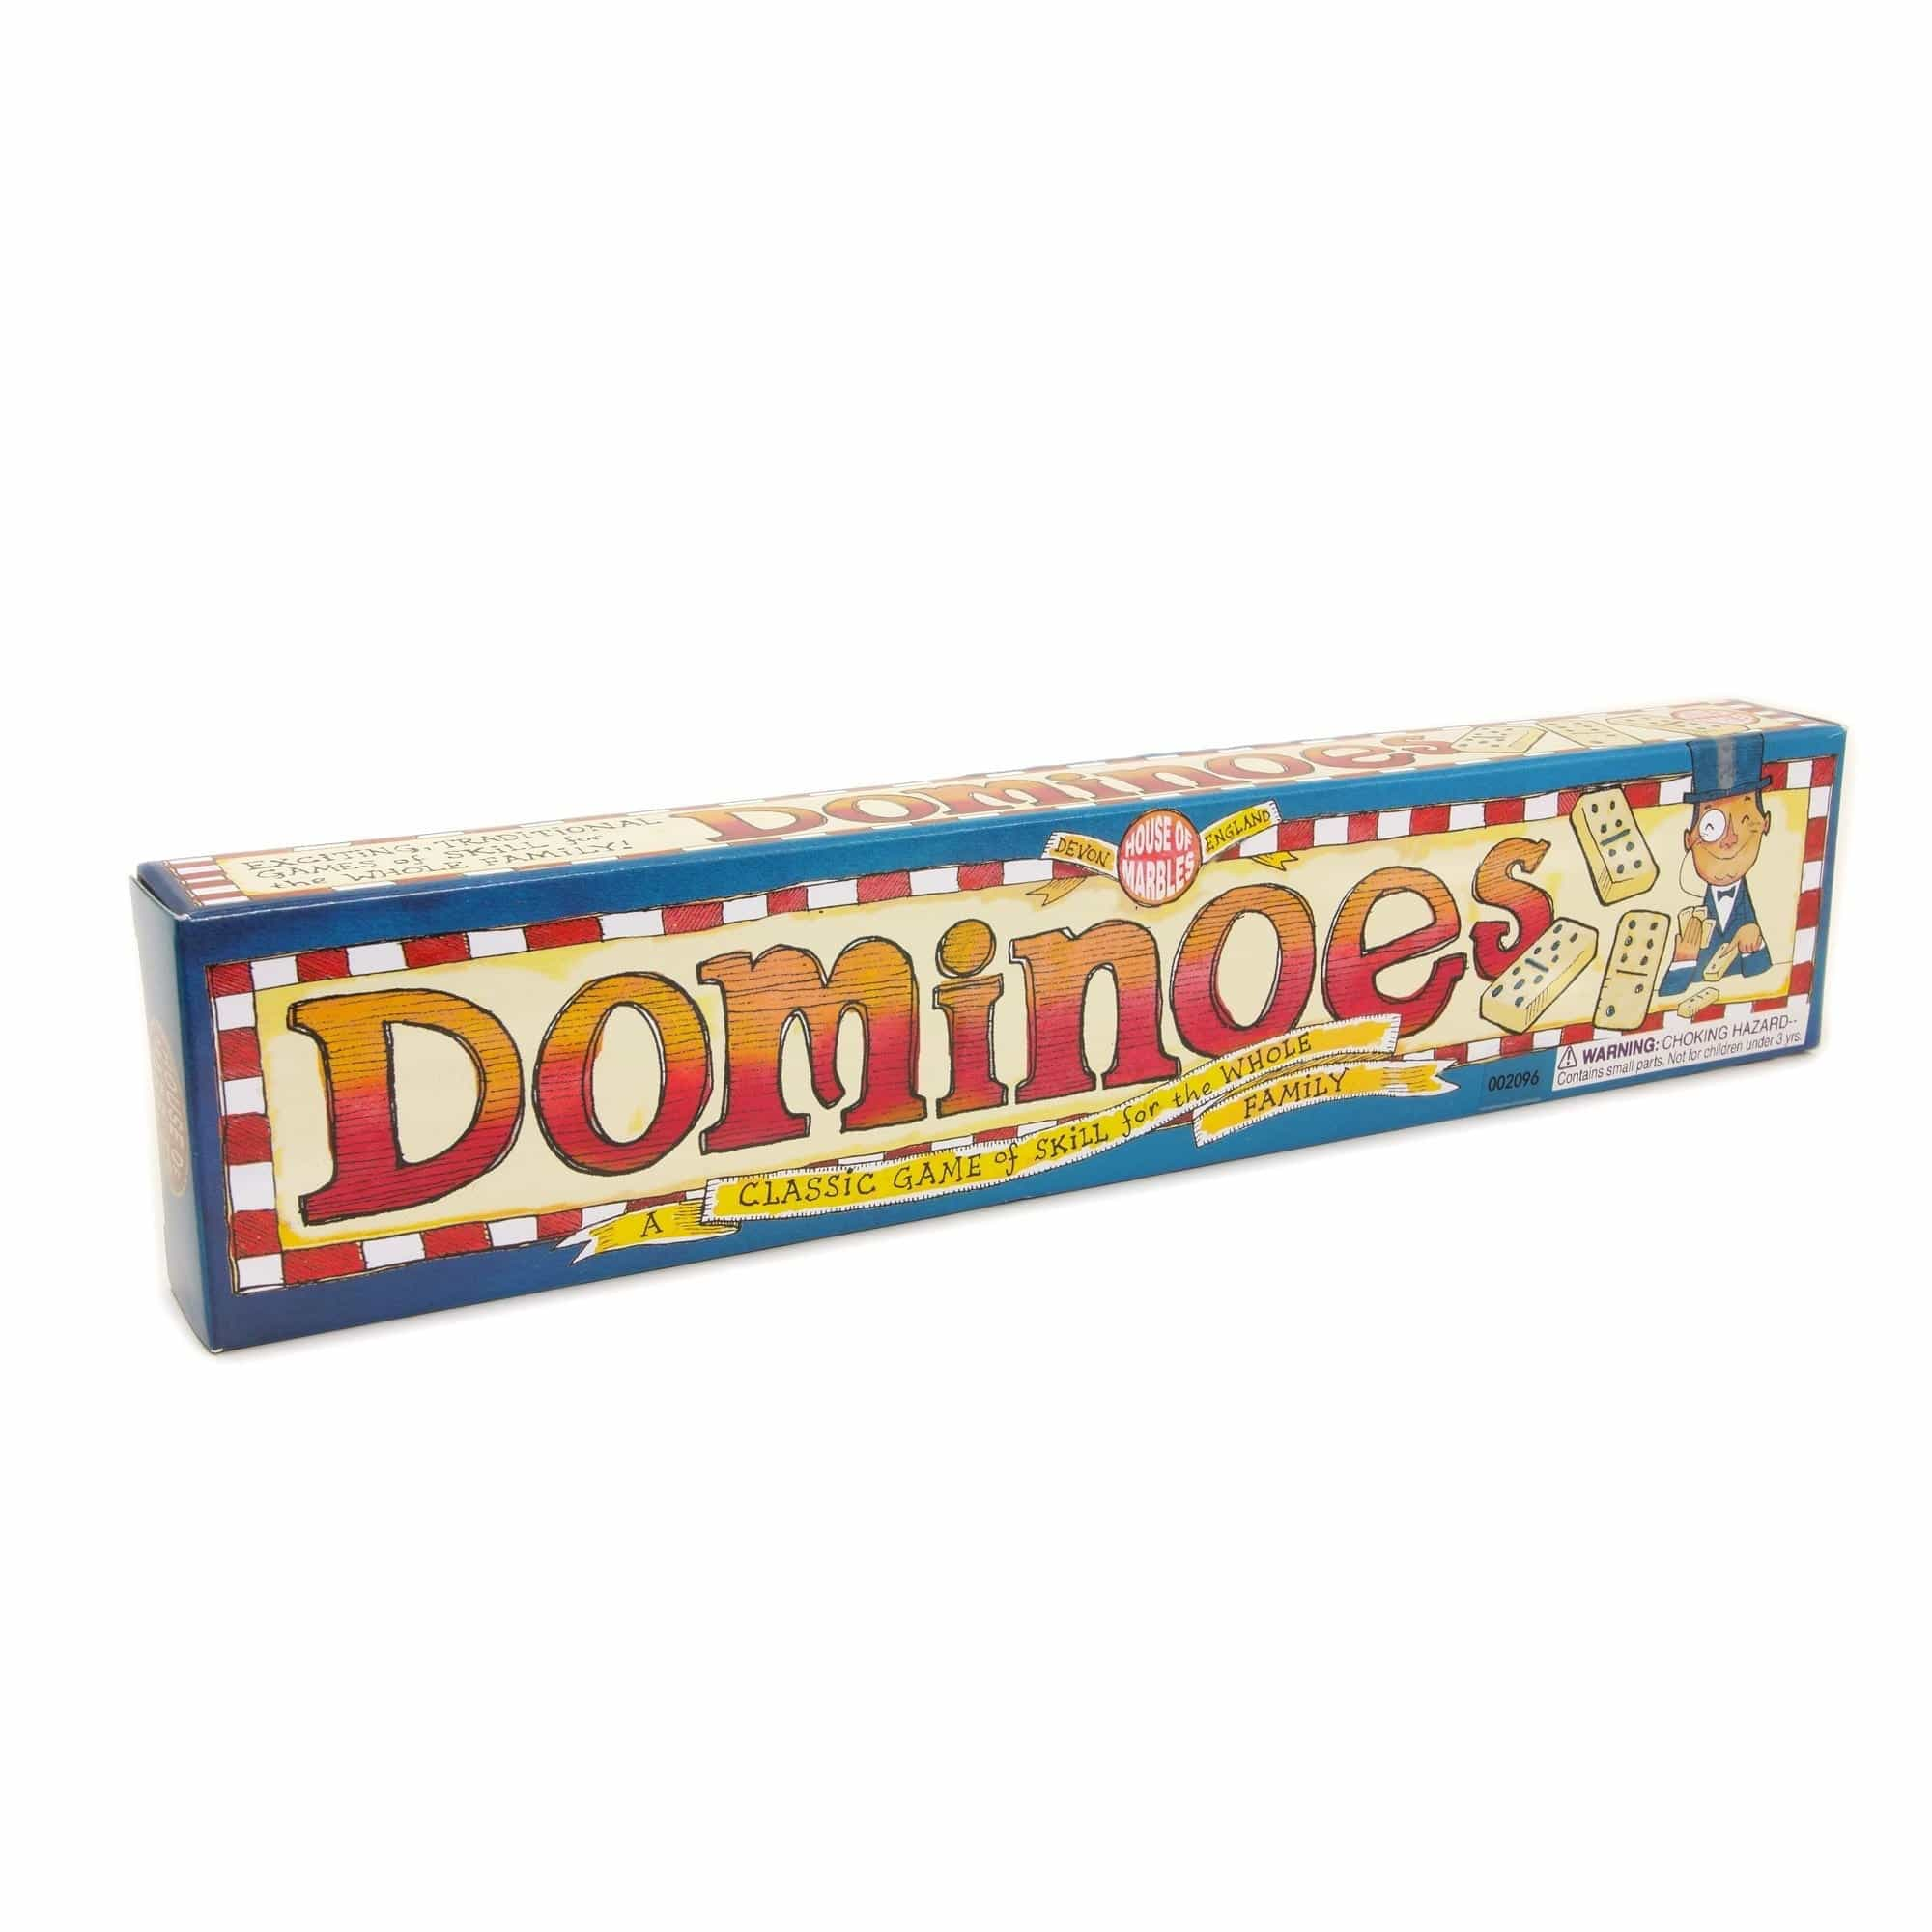 Dominoes by house of marbles great fun!